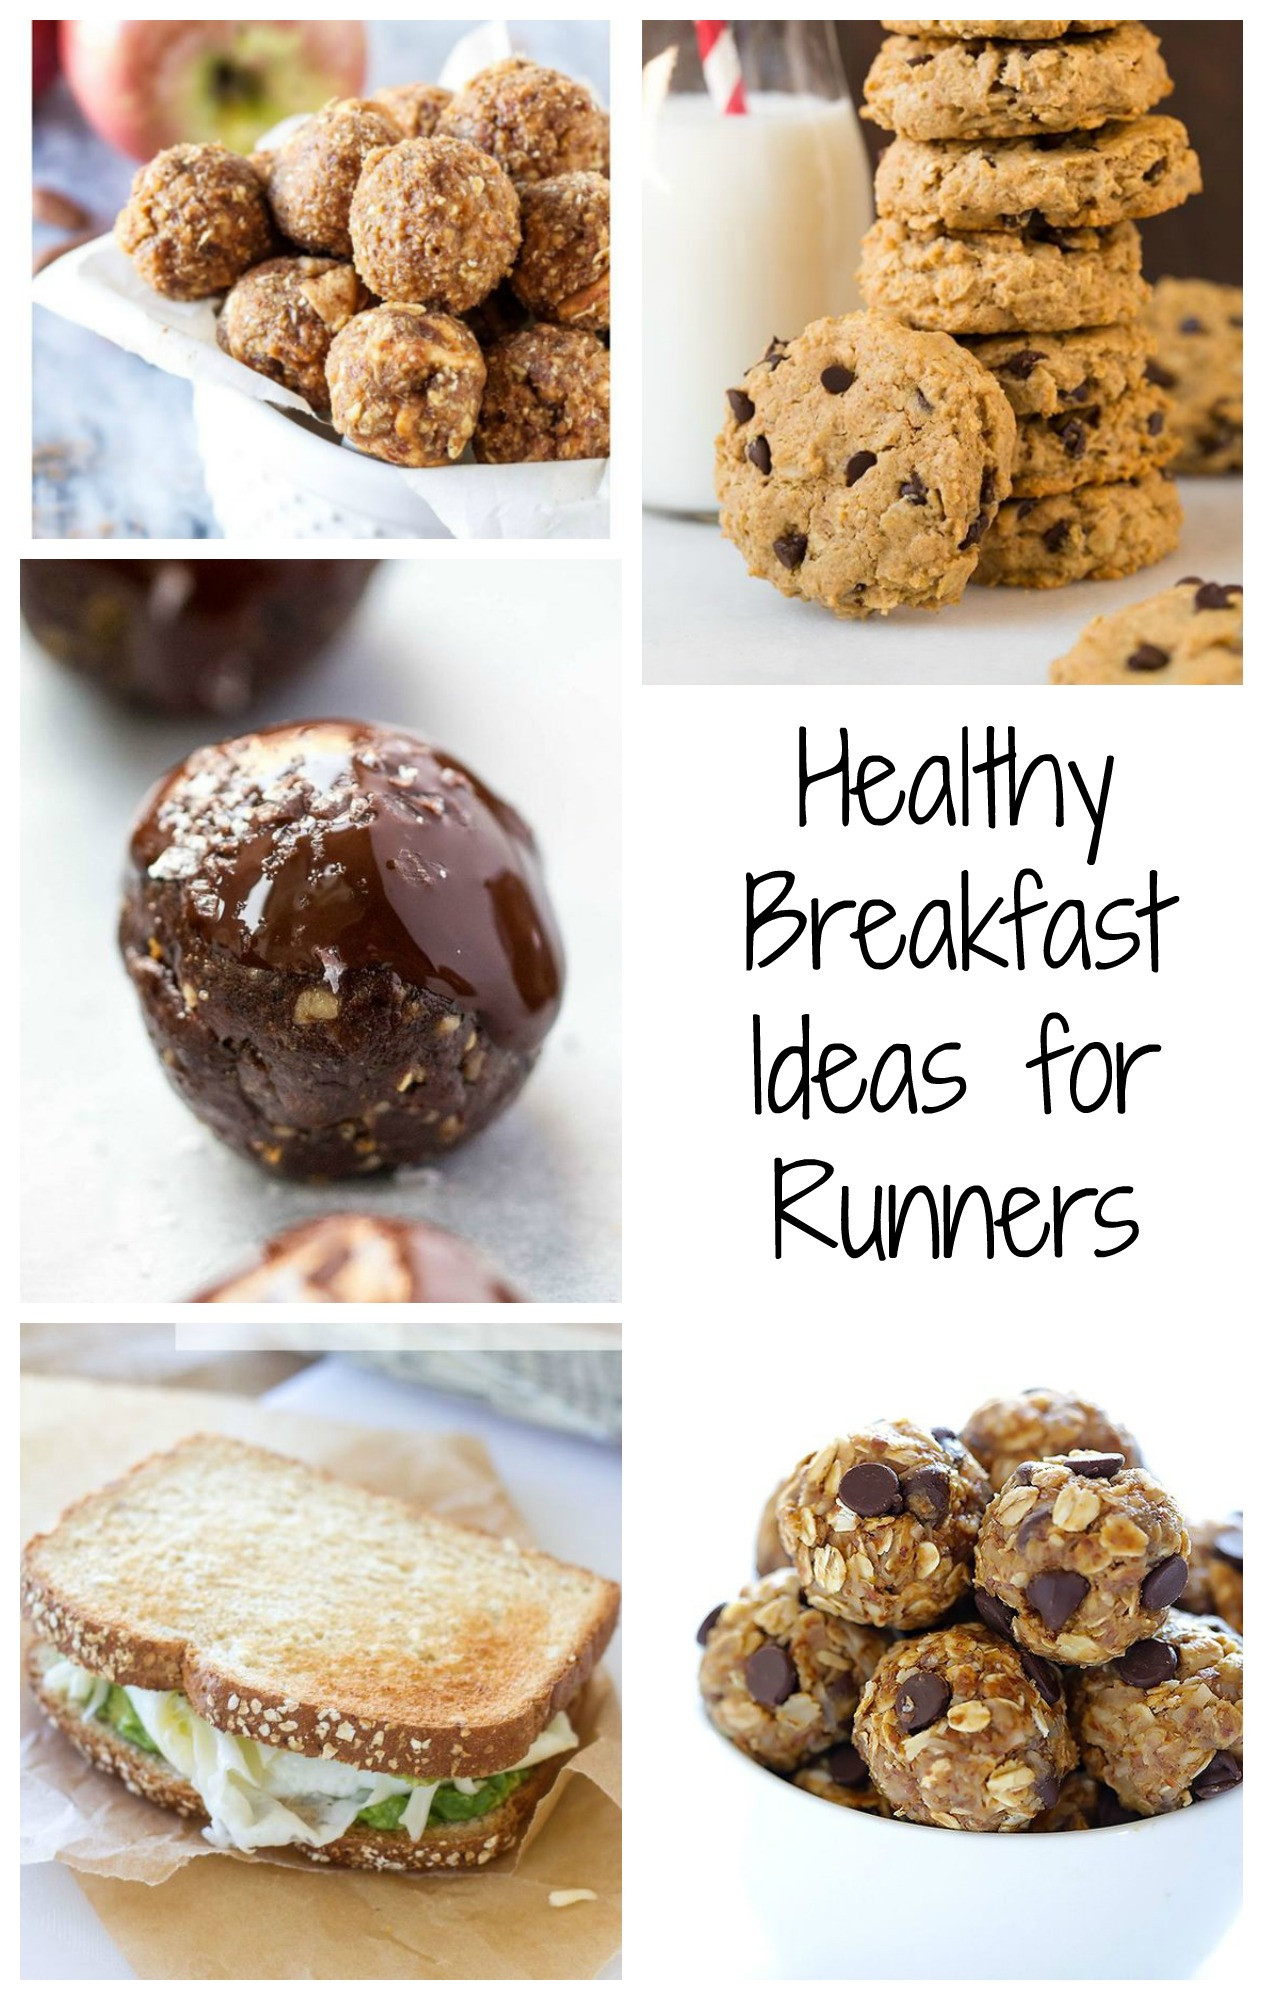 Healthy Breakfast For Runners  Healthy Breakfast Ideas for Runners RUN FOREFOOT